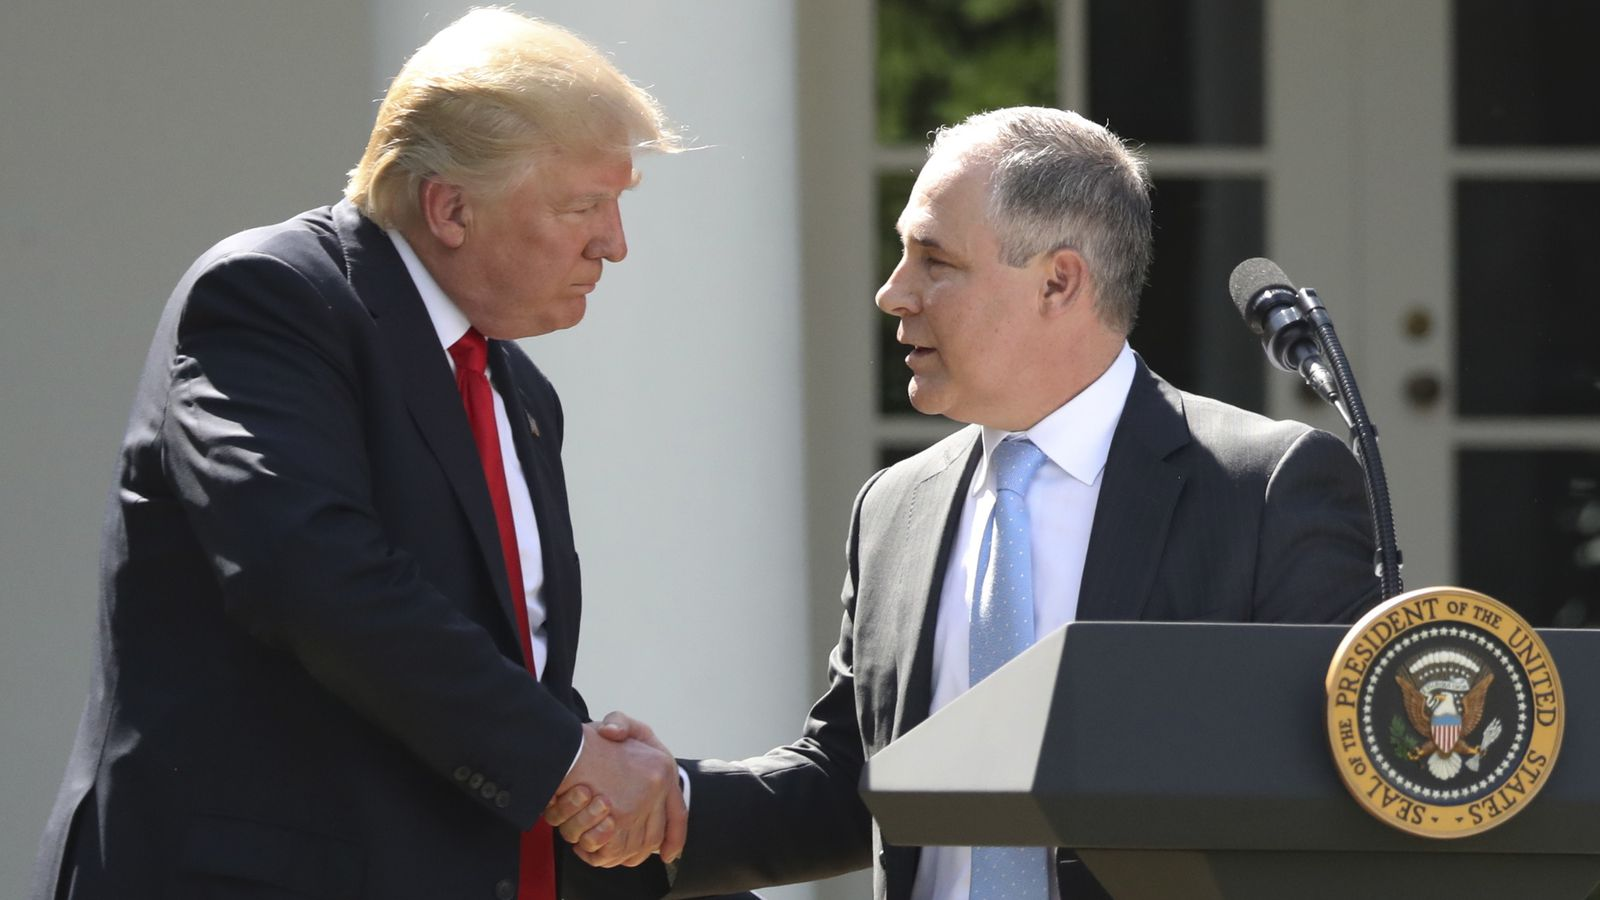 Trump and Pruitt are the biggest threat to the EPA in its 47 years of existence